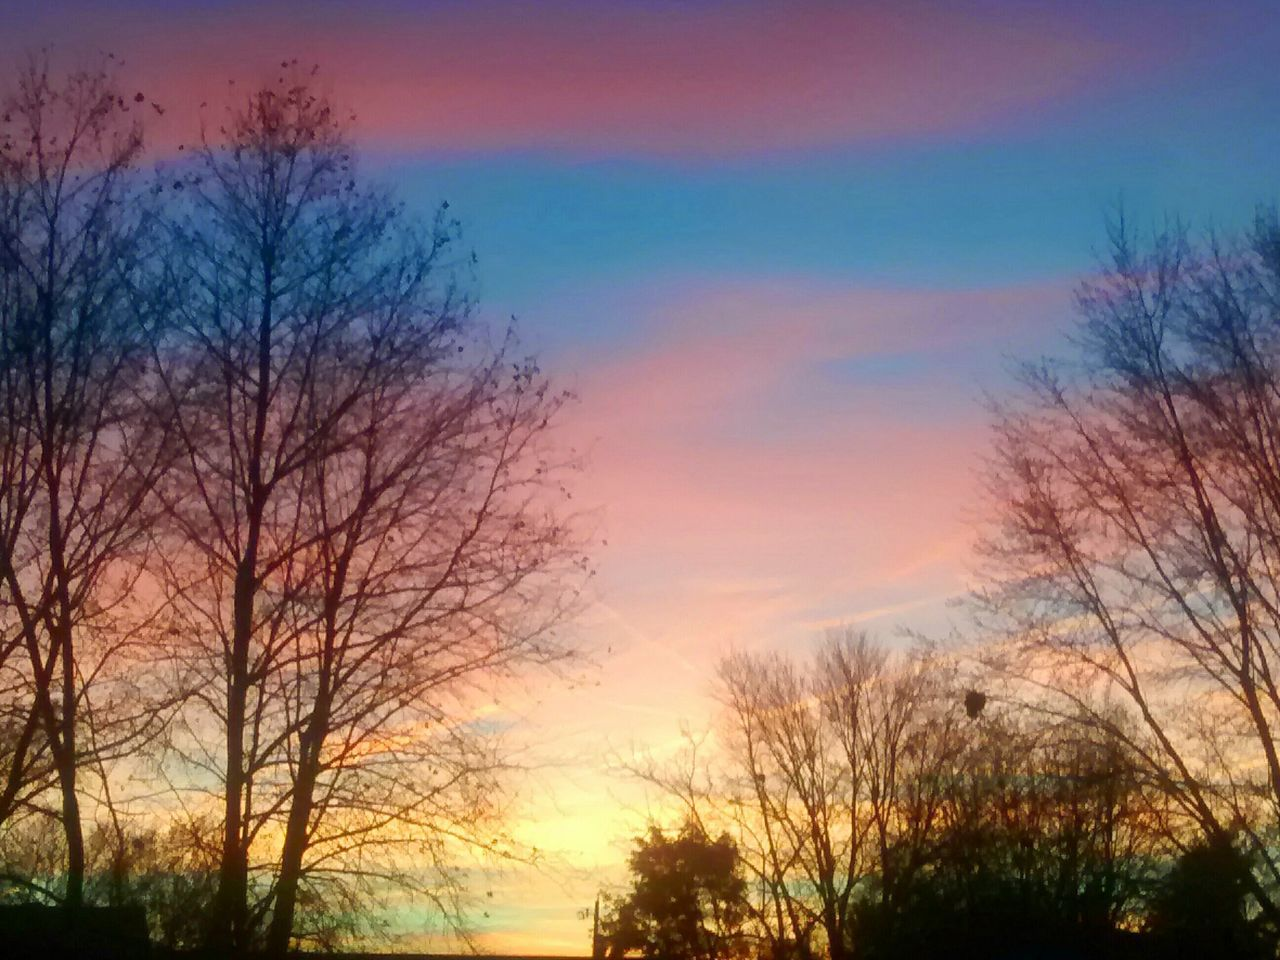 bare tree, sunset, tree, sky, beauty in nature, silhouette, nature, no people, cloud - sky, scenics, outdoors, low angle view, tranquil scene, tranquility, multi colored, architecture, branch, building exterior, day